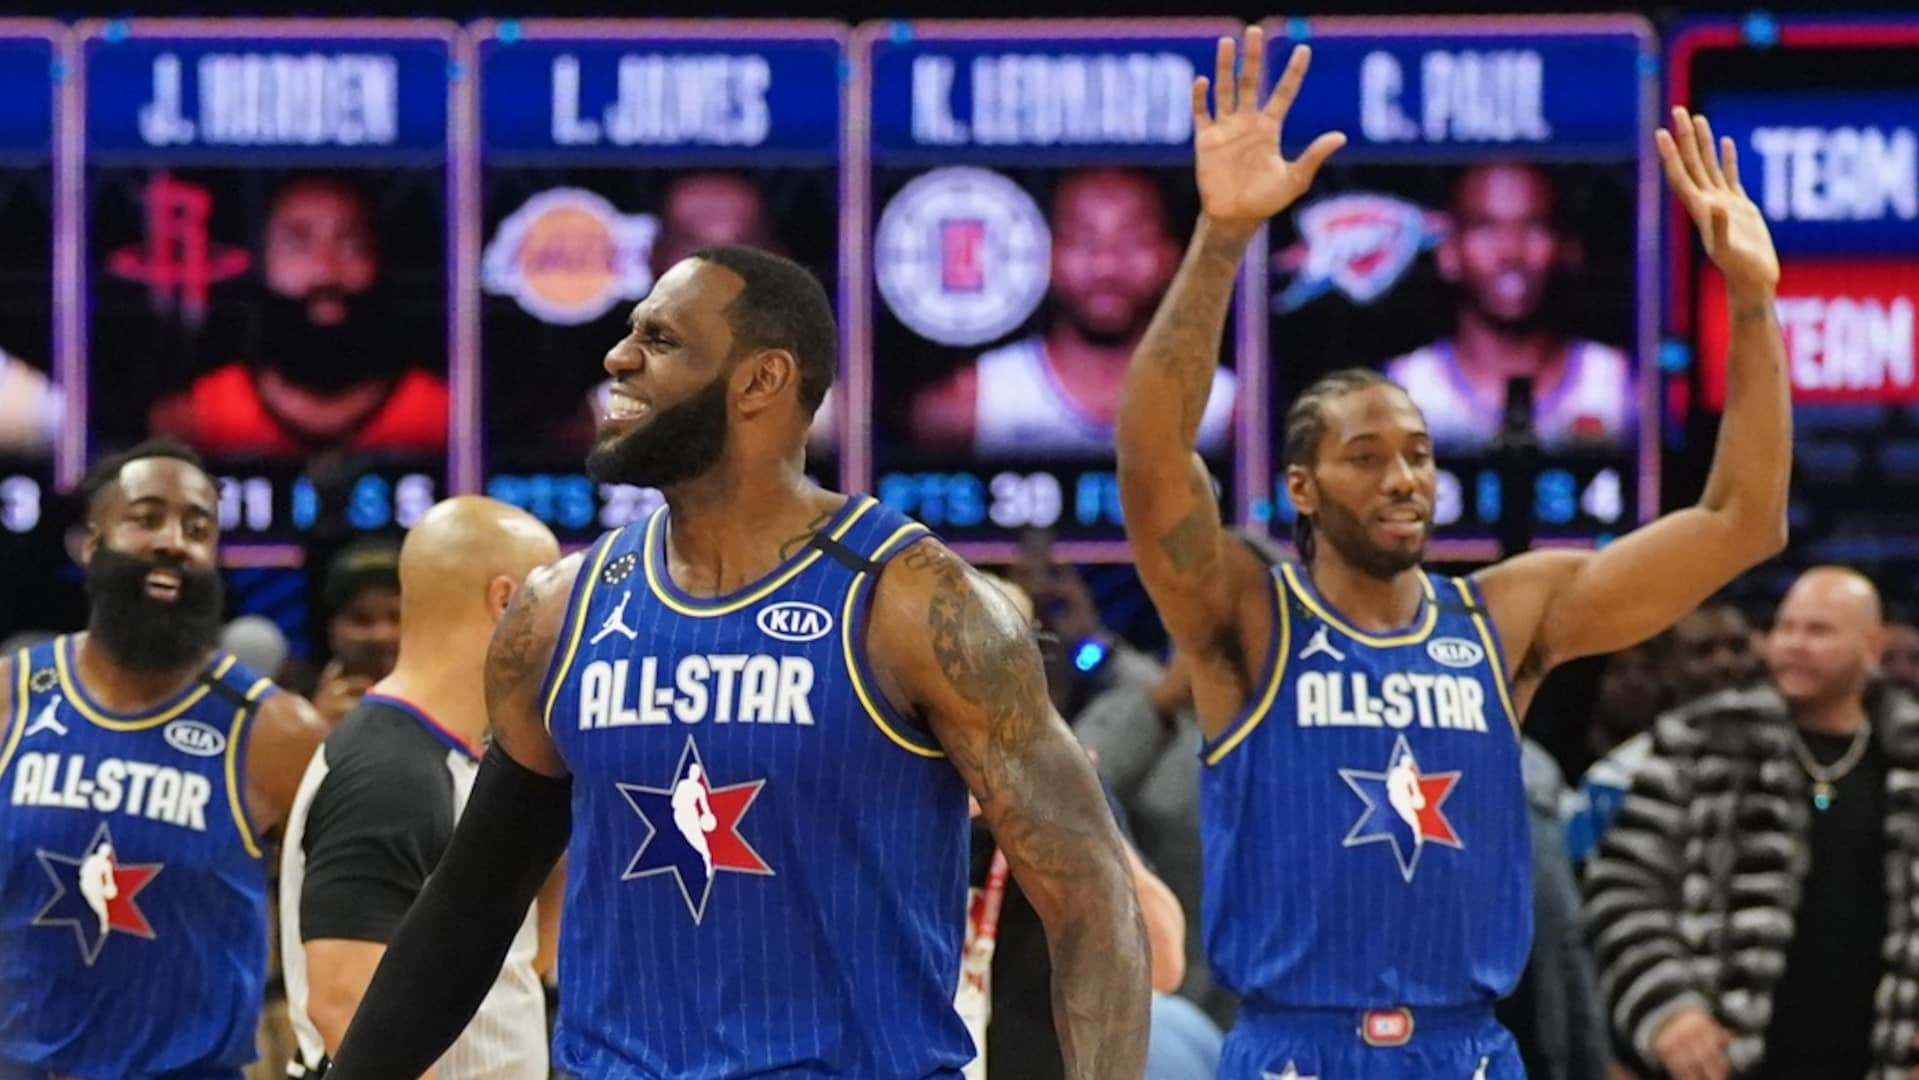 Ratings for NBA All-Star Game rise by 8 percent